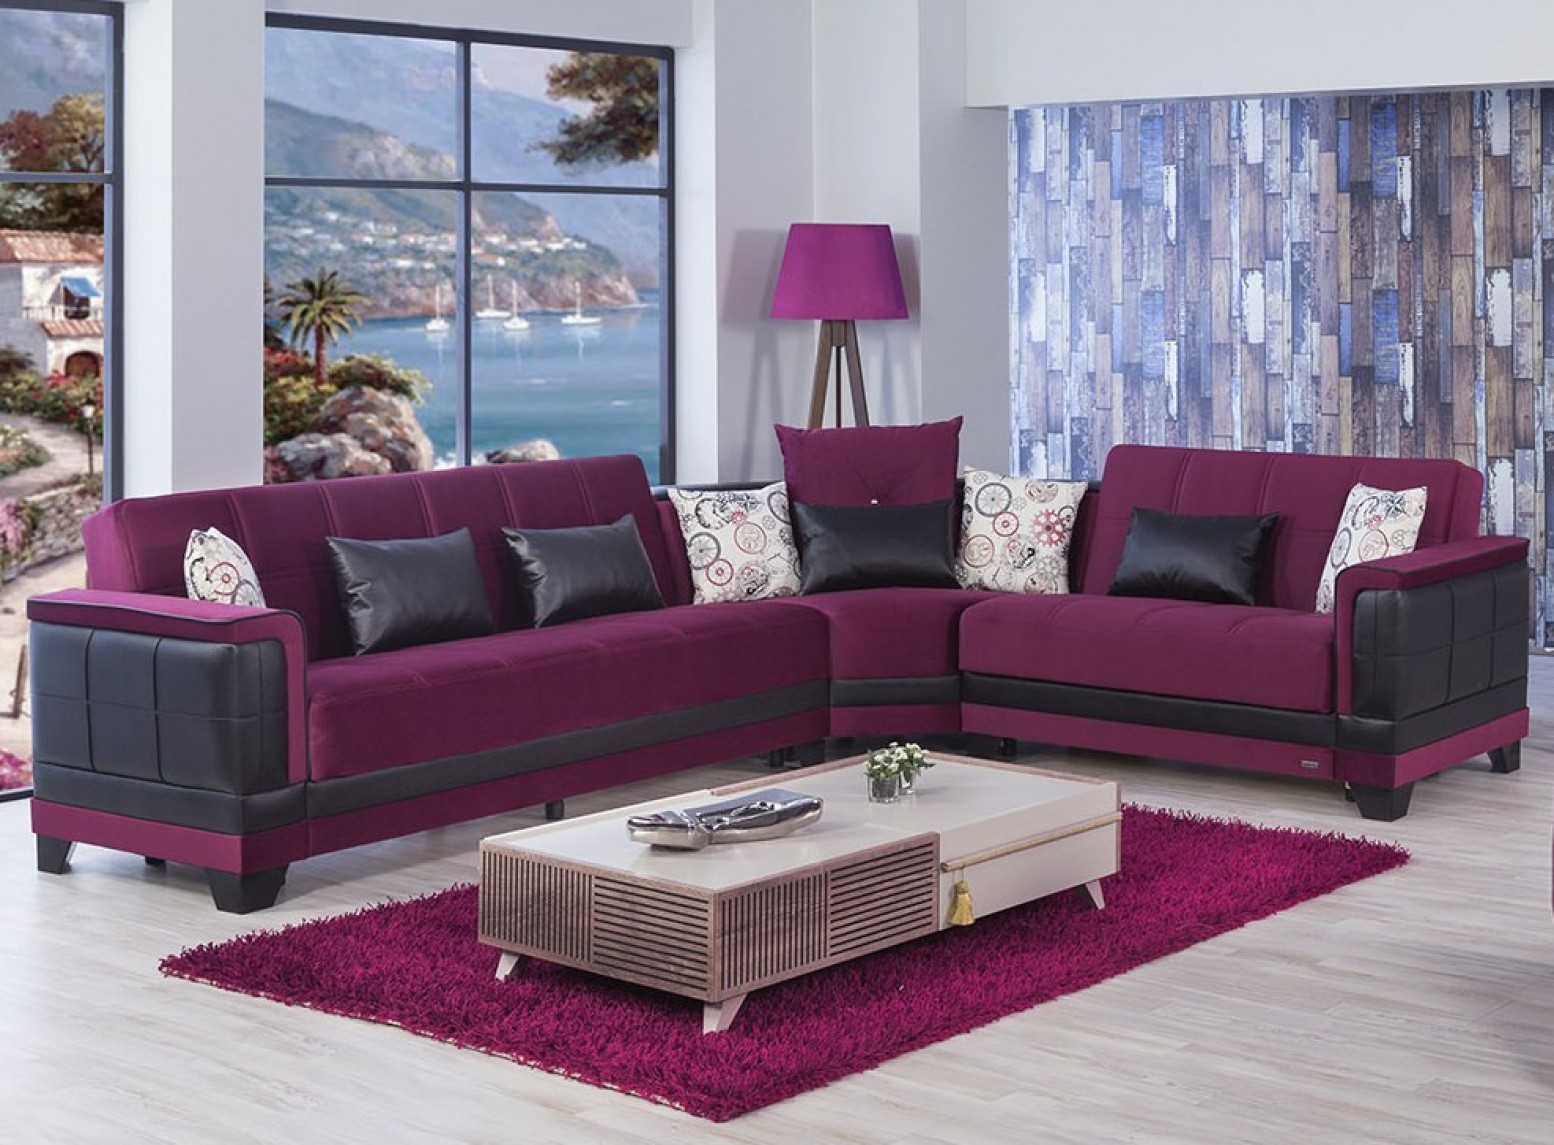 Remarkable Four Seasons Sectional Sofa Eva Burgundy Unemploymentrelief Wooden Chair Designs For Living Room Unemploymentrelieforg